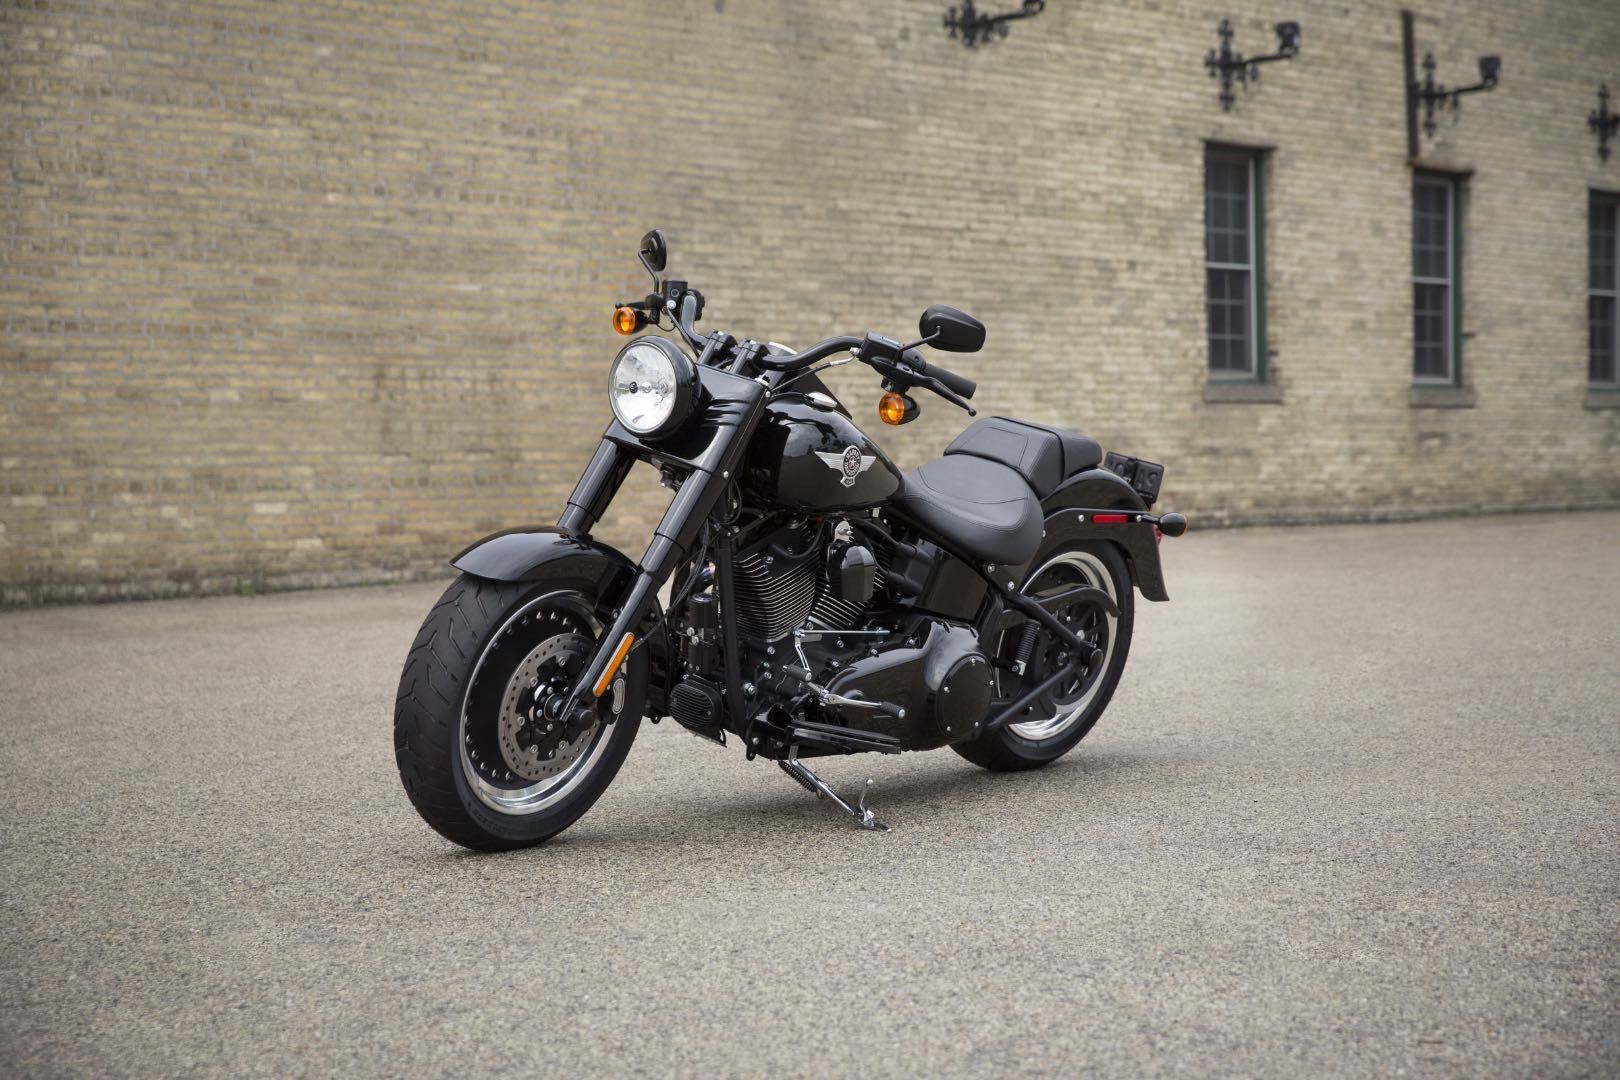 2017 Harley-Davidson Softail Fat Boy S Buyer's Guide | Specs & Price